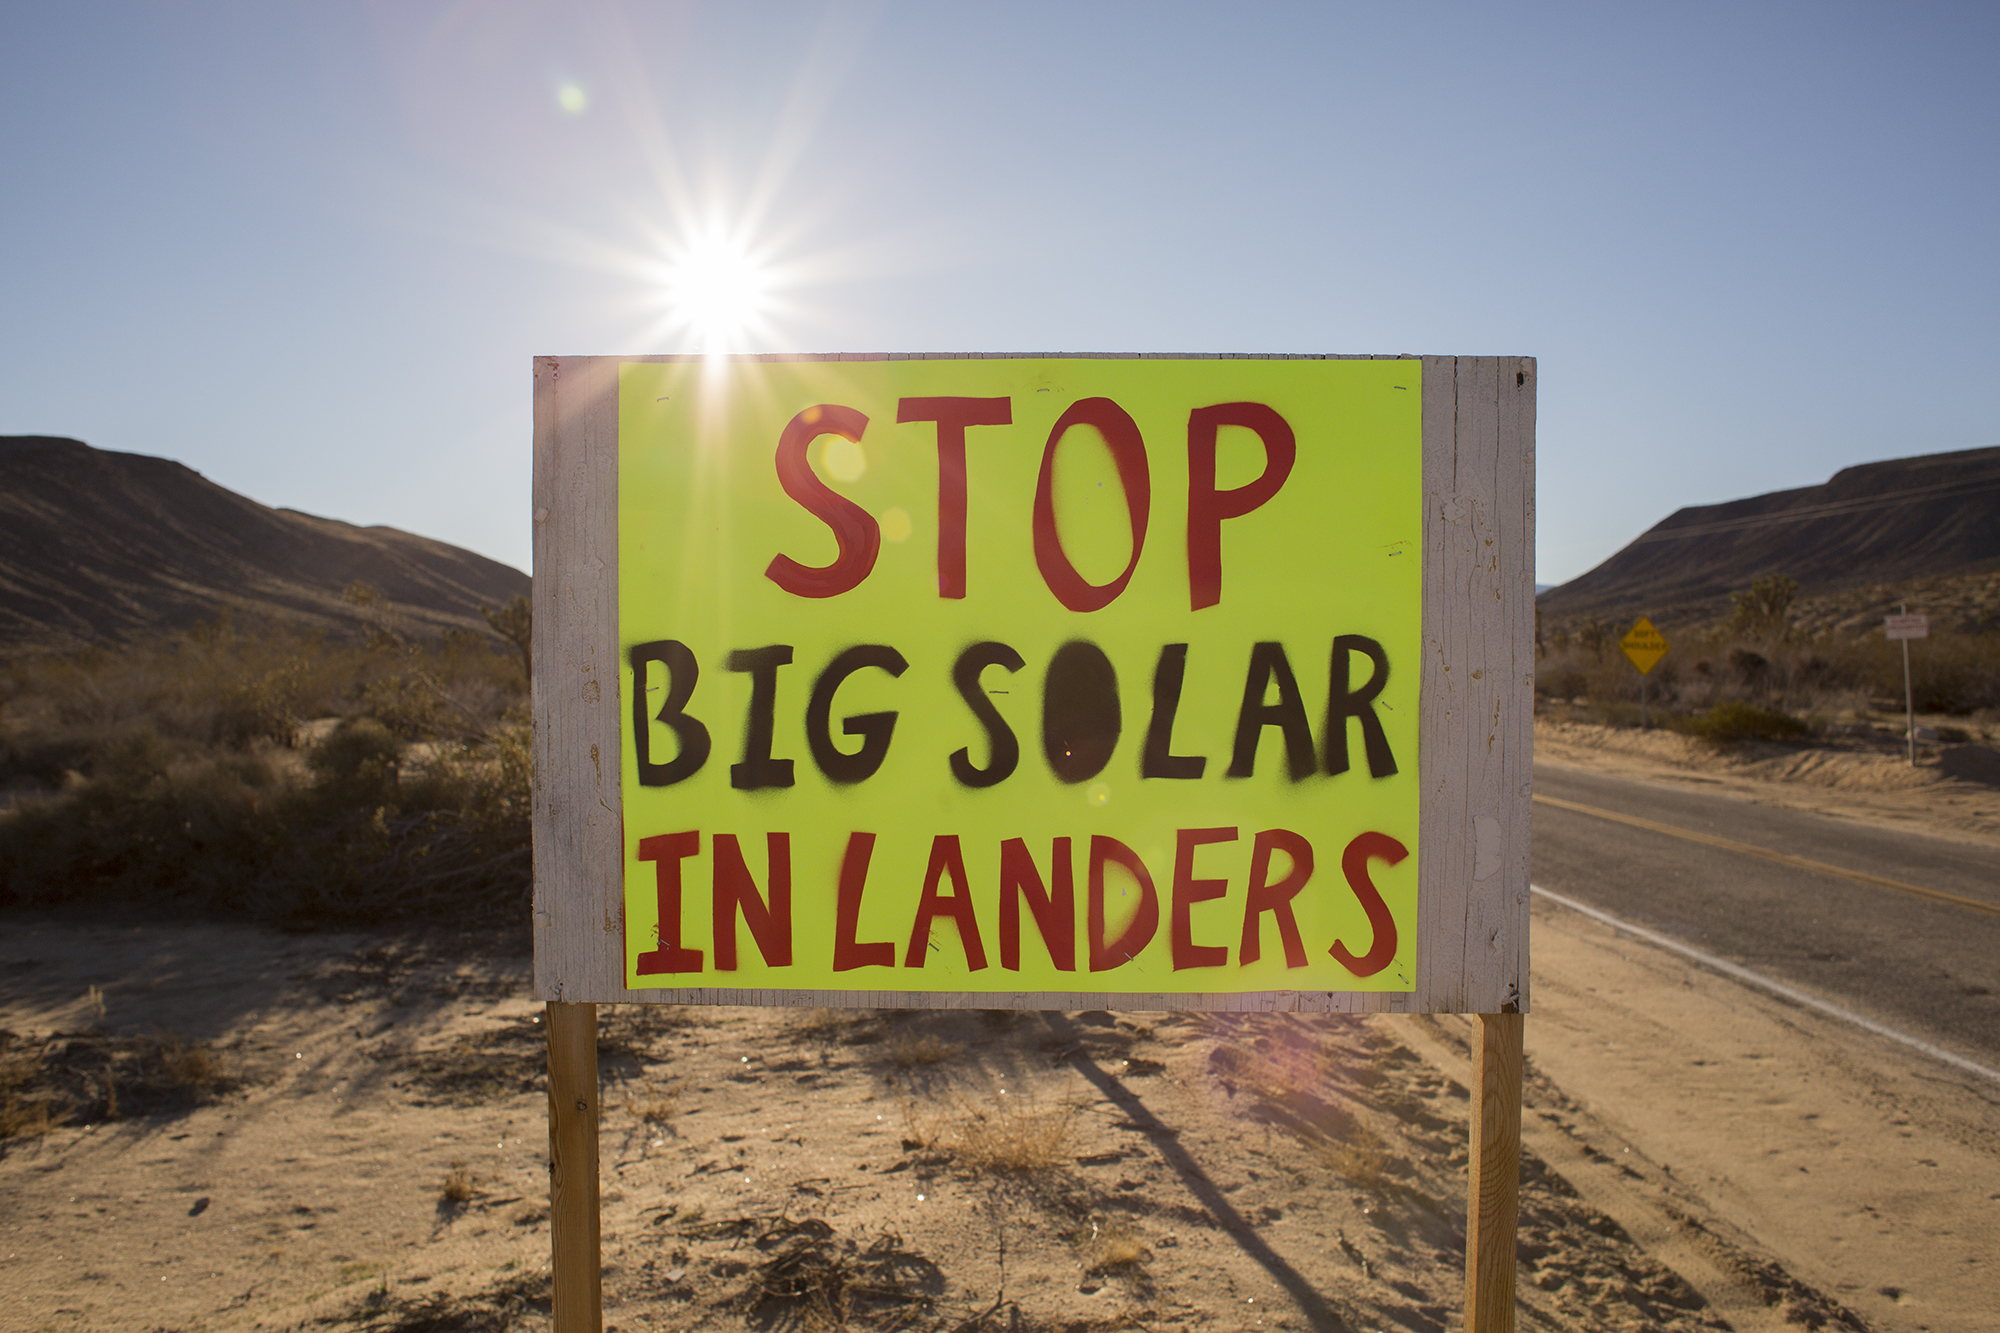 Landers and the Pioneertown communities to the west of Joshua Tree aresmall but particularly ardent voices against solar development.